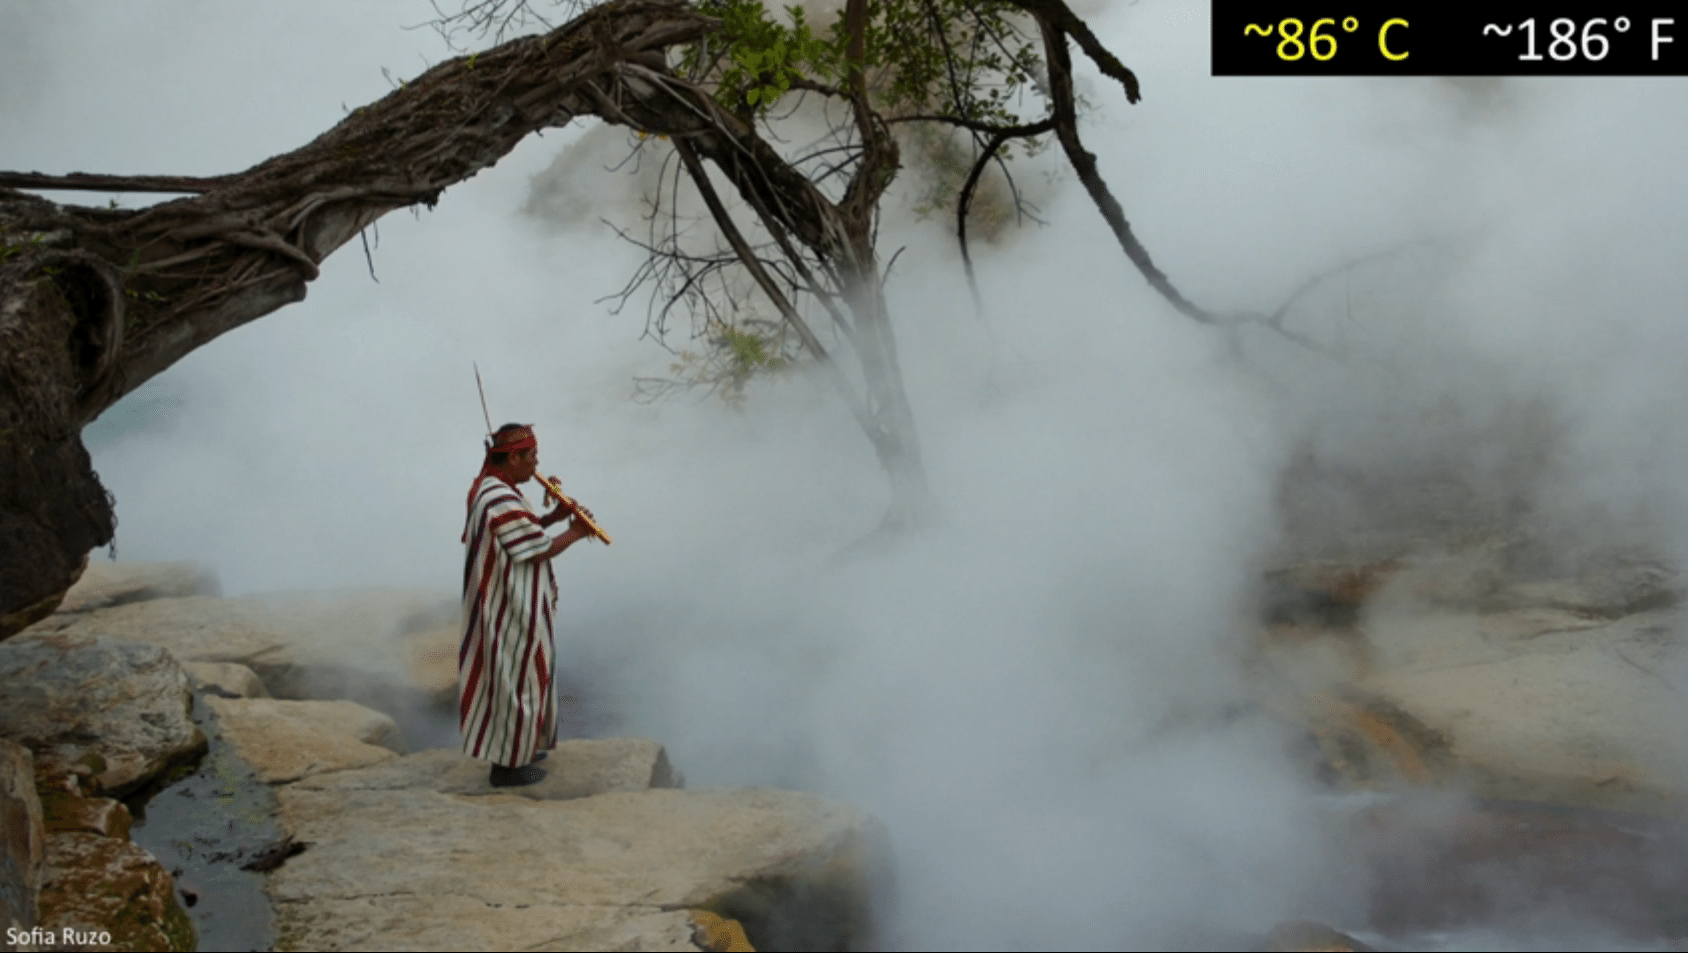 Boiling River in the Amazon